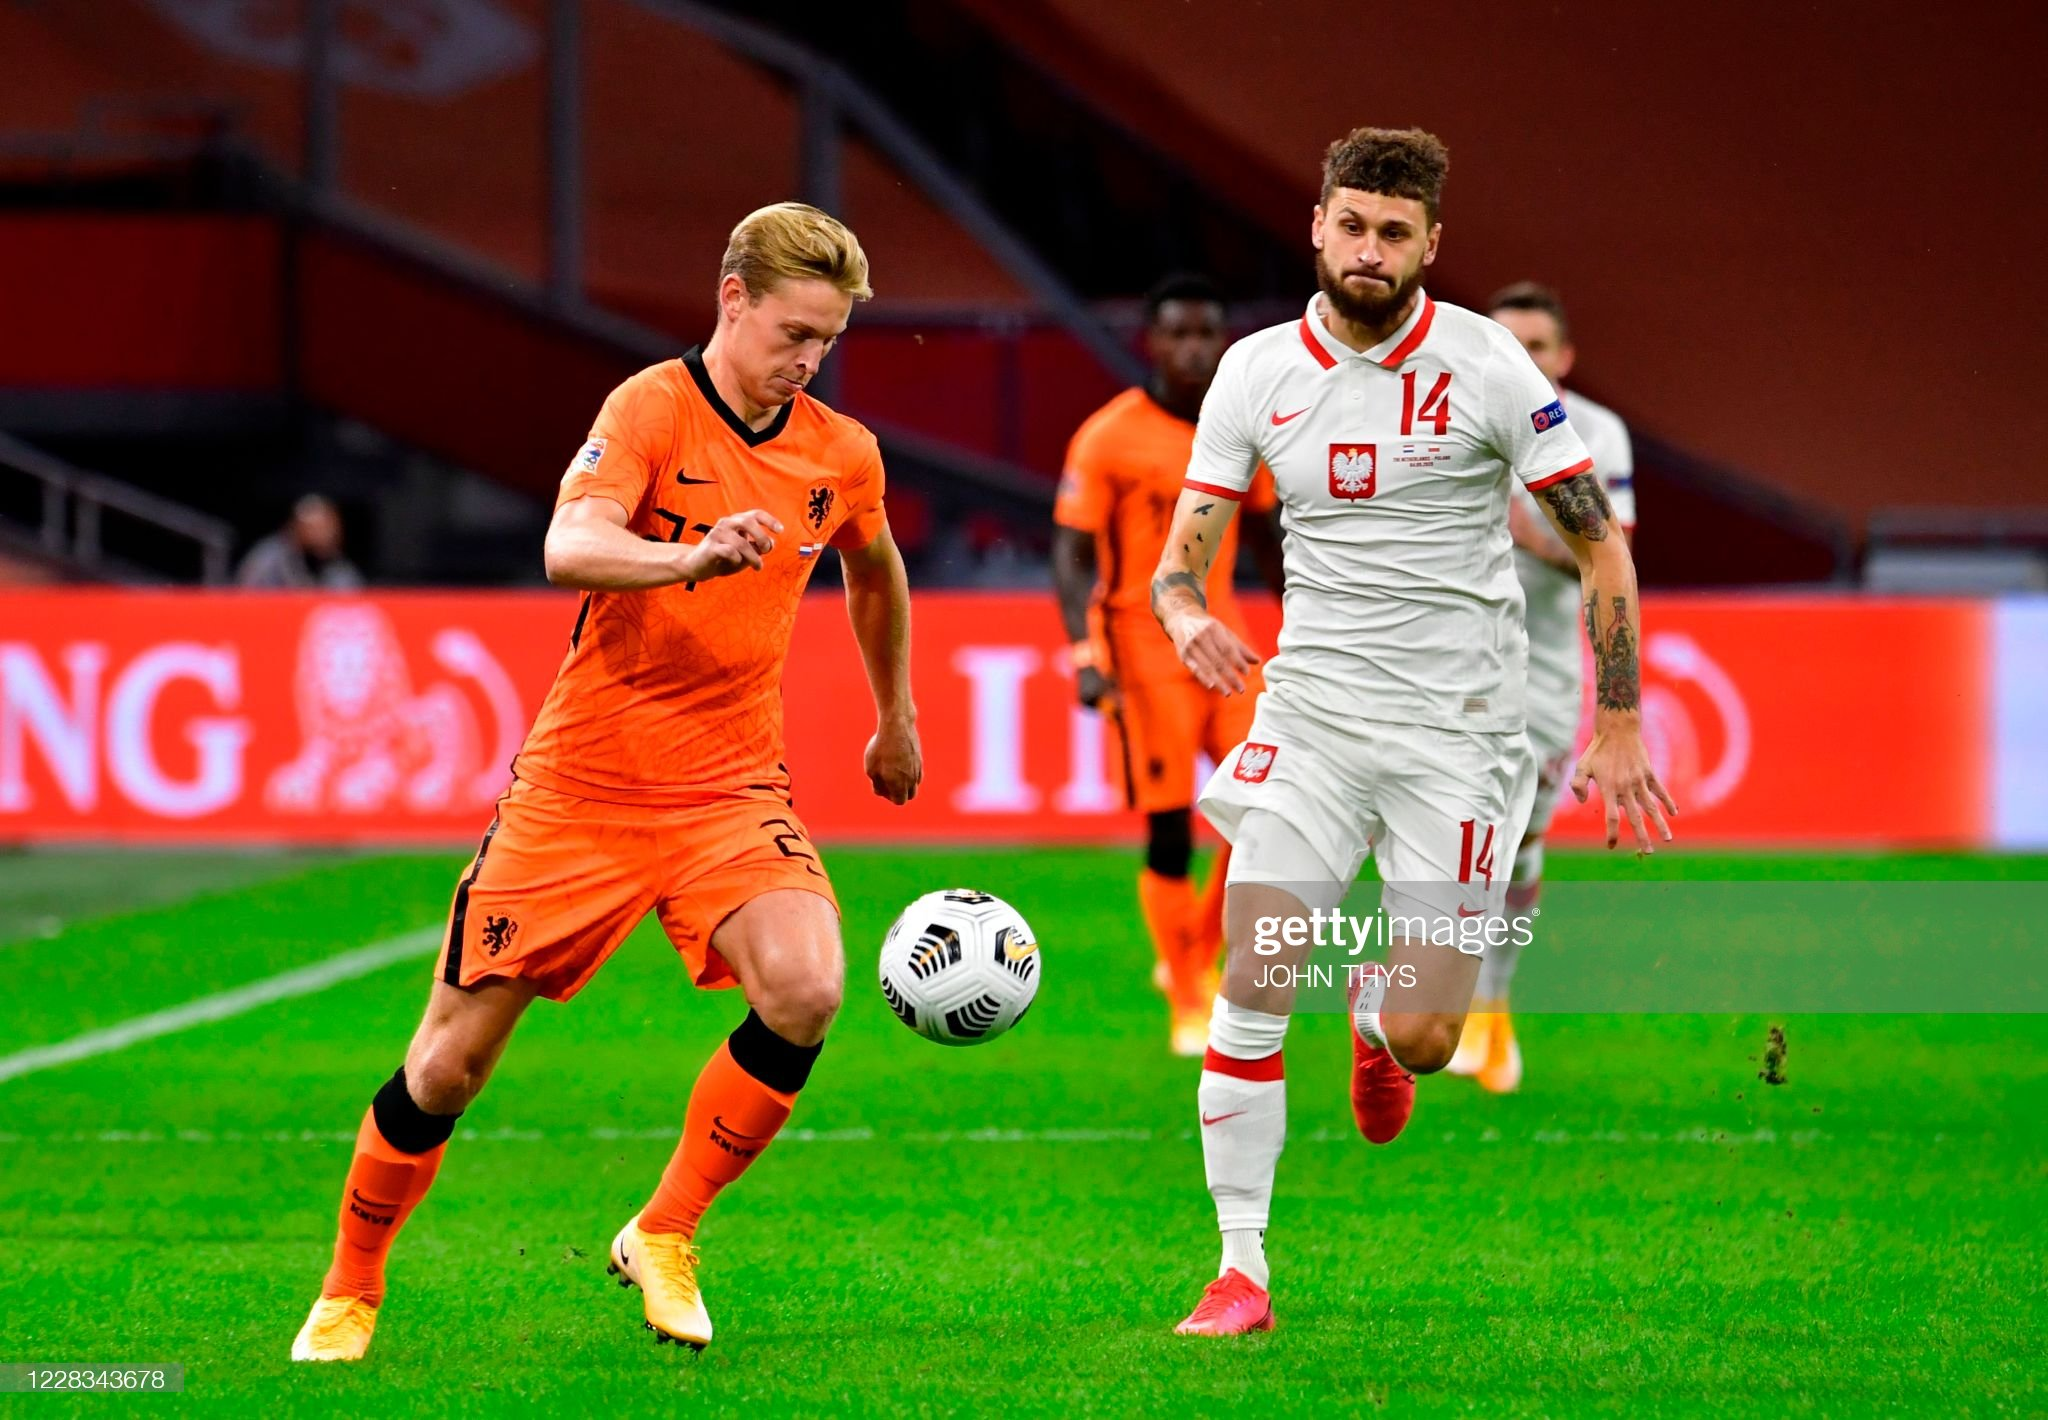 Poland vs Netherlands Preview, prediction and odds